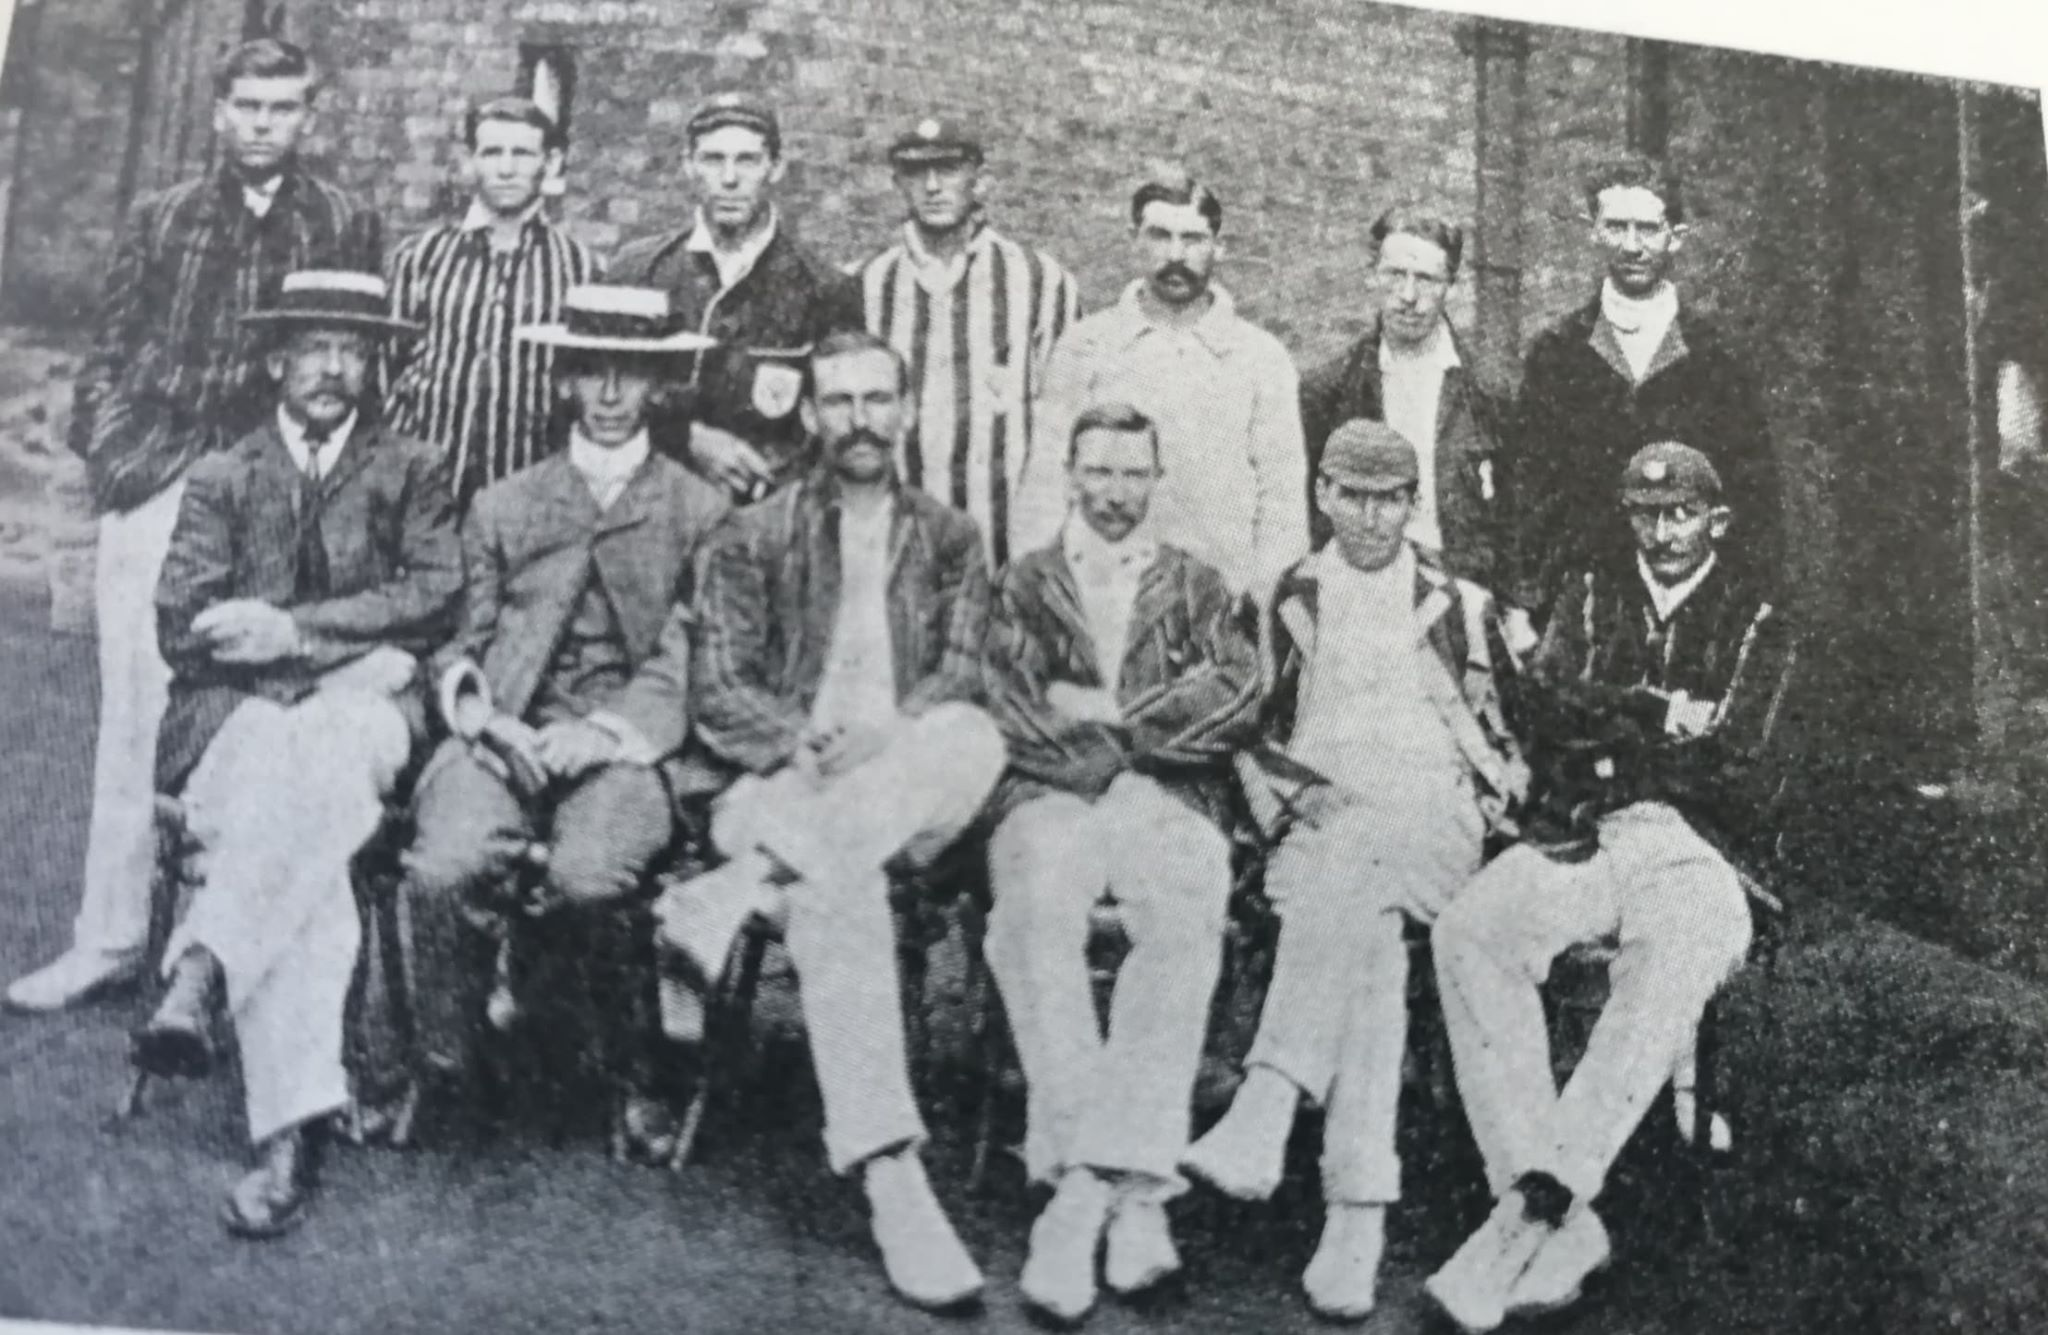 The Eastern Province team. Bert Vogler seated on extreme right.